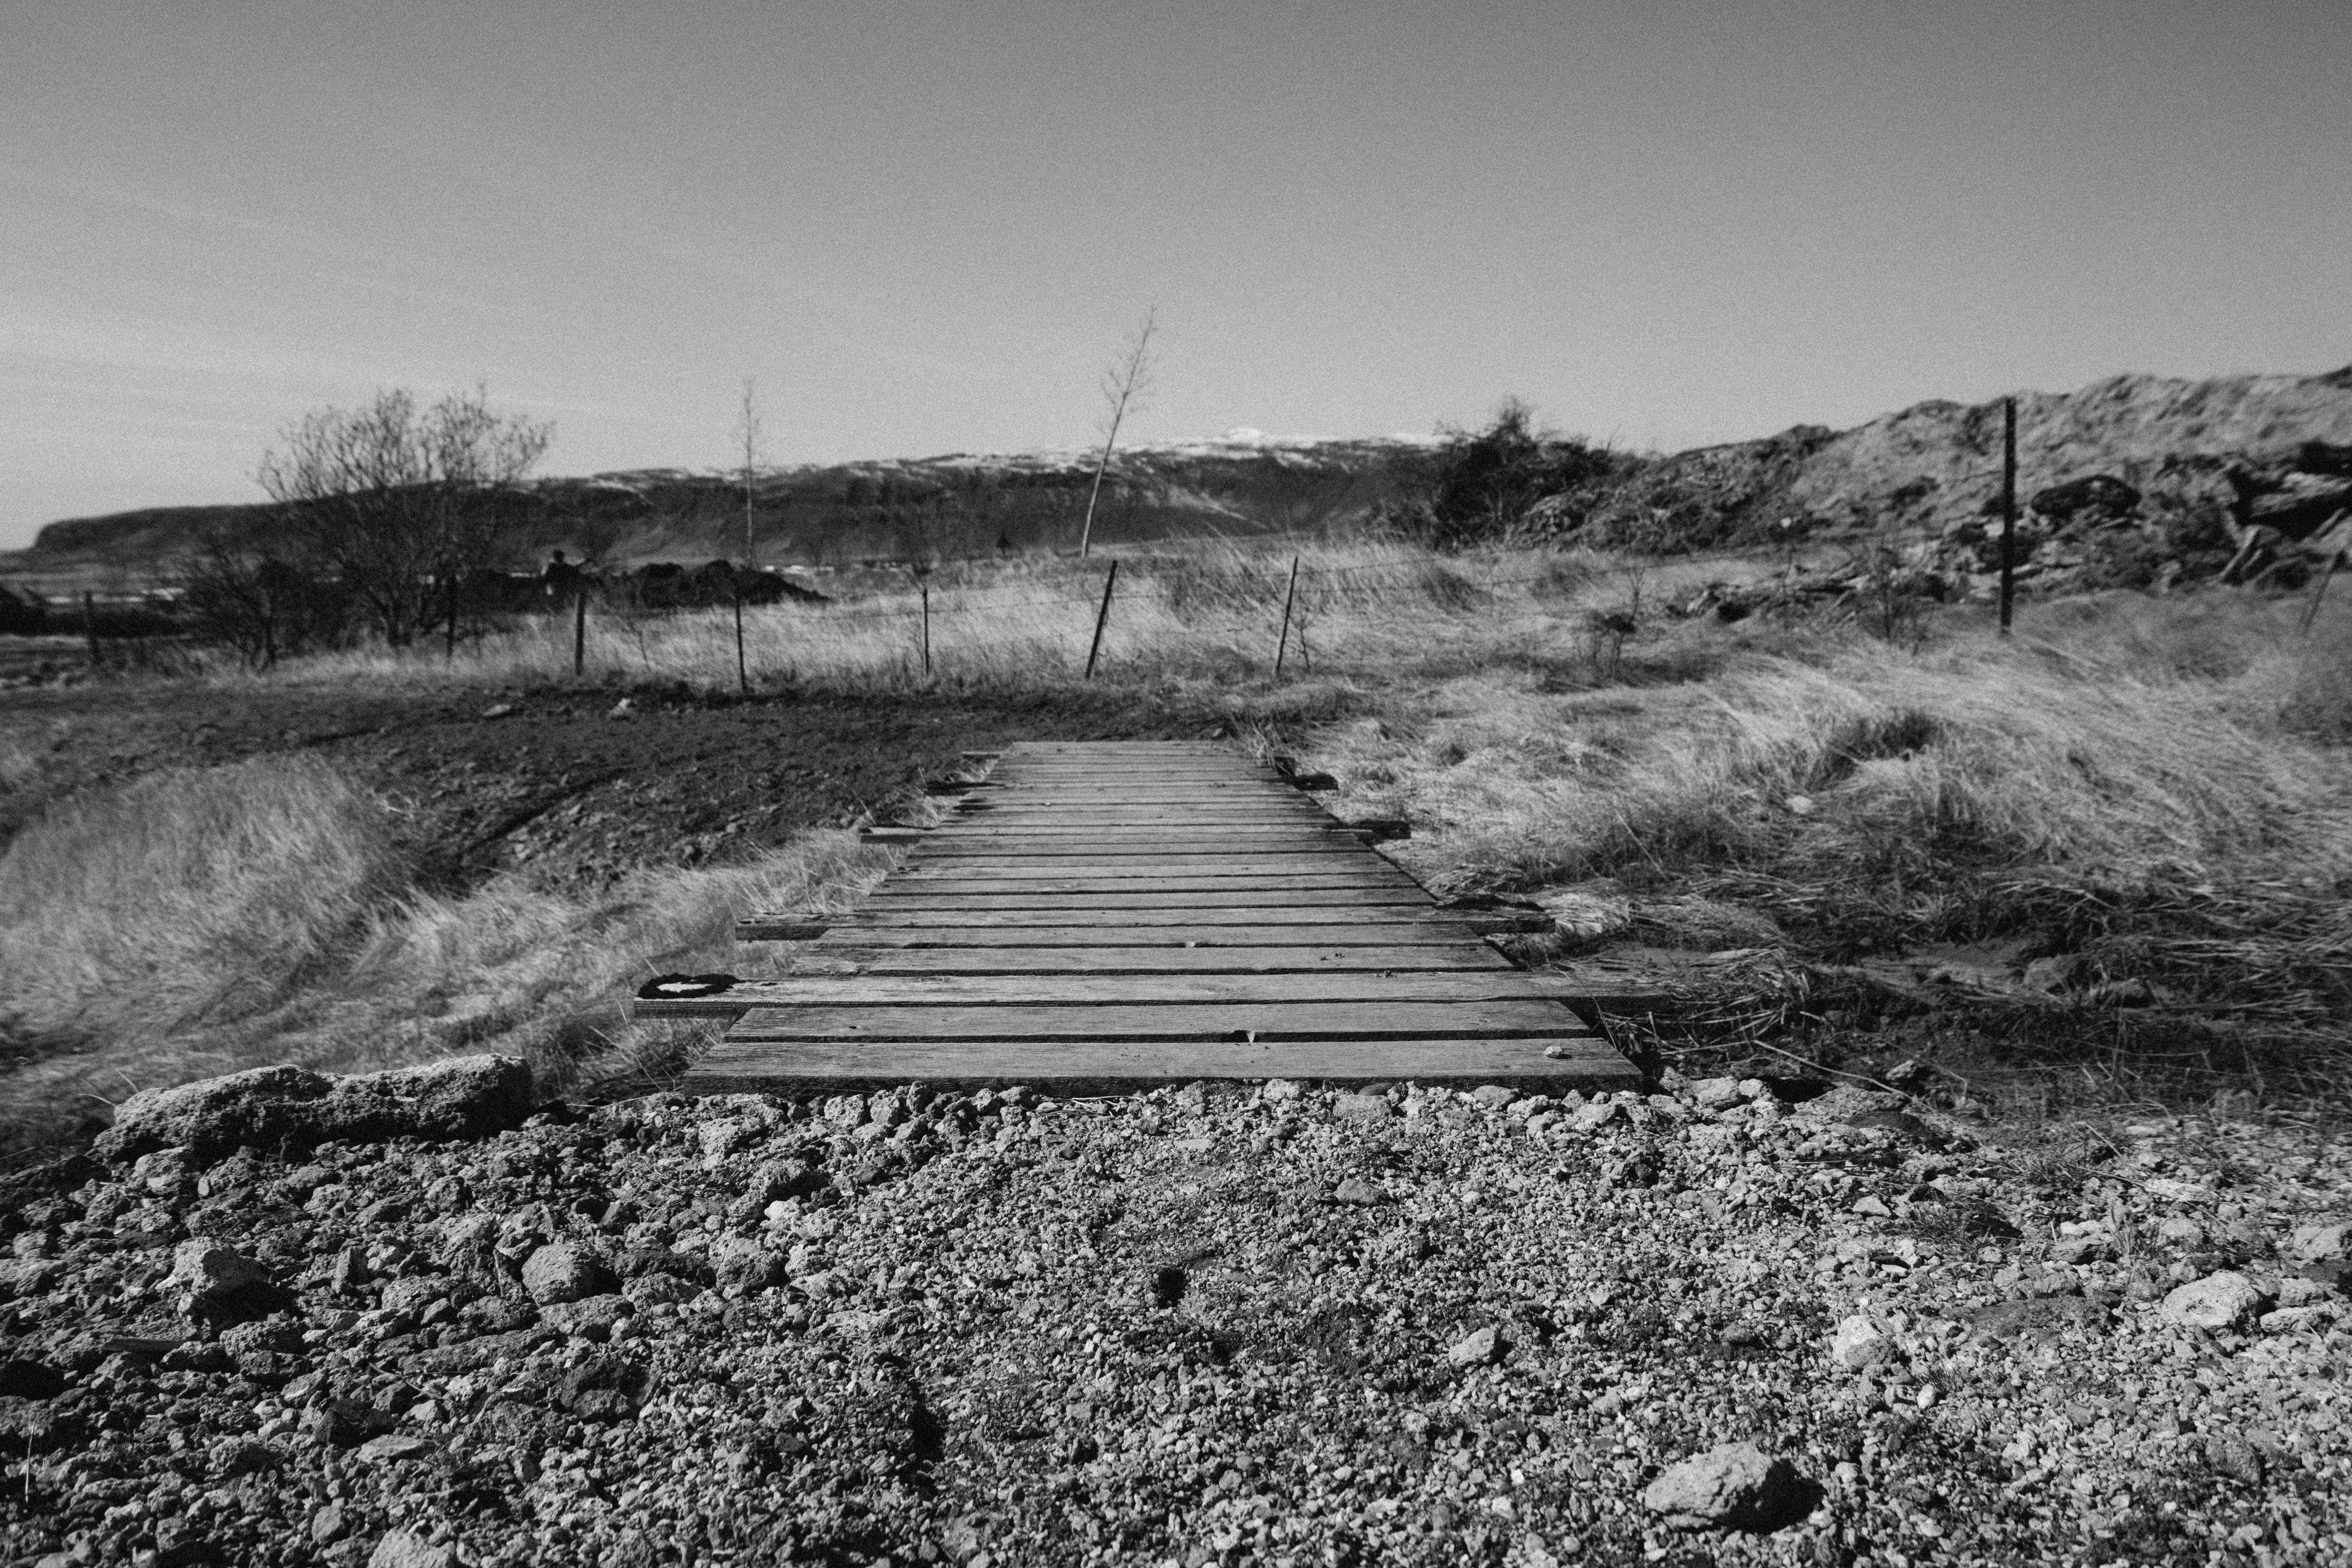 Grayscale Photography of Brown Wooden Bridge